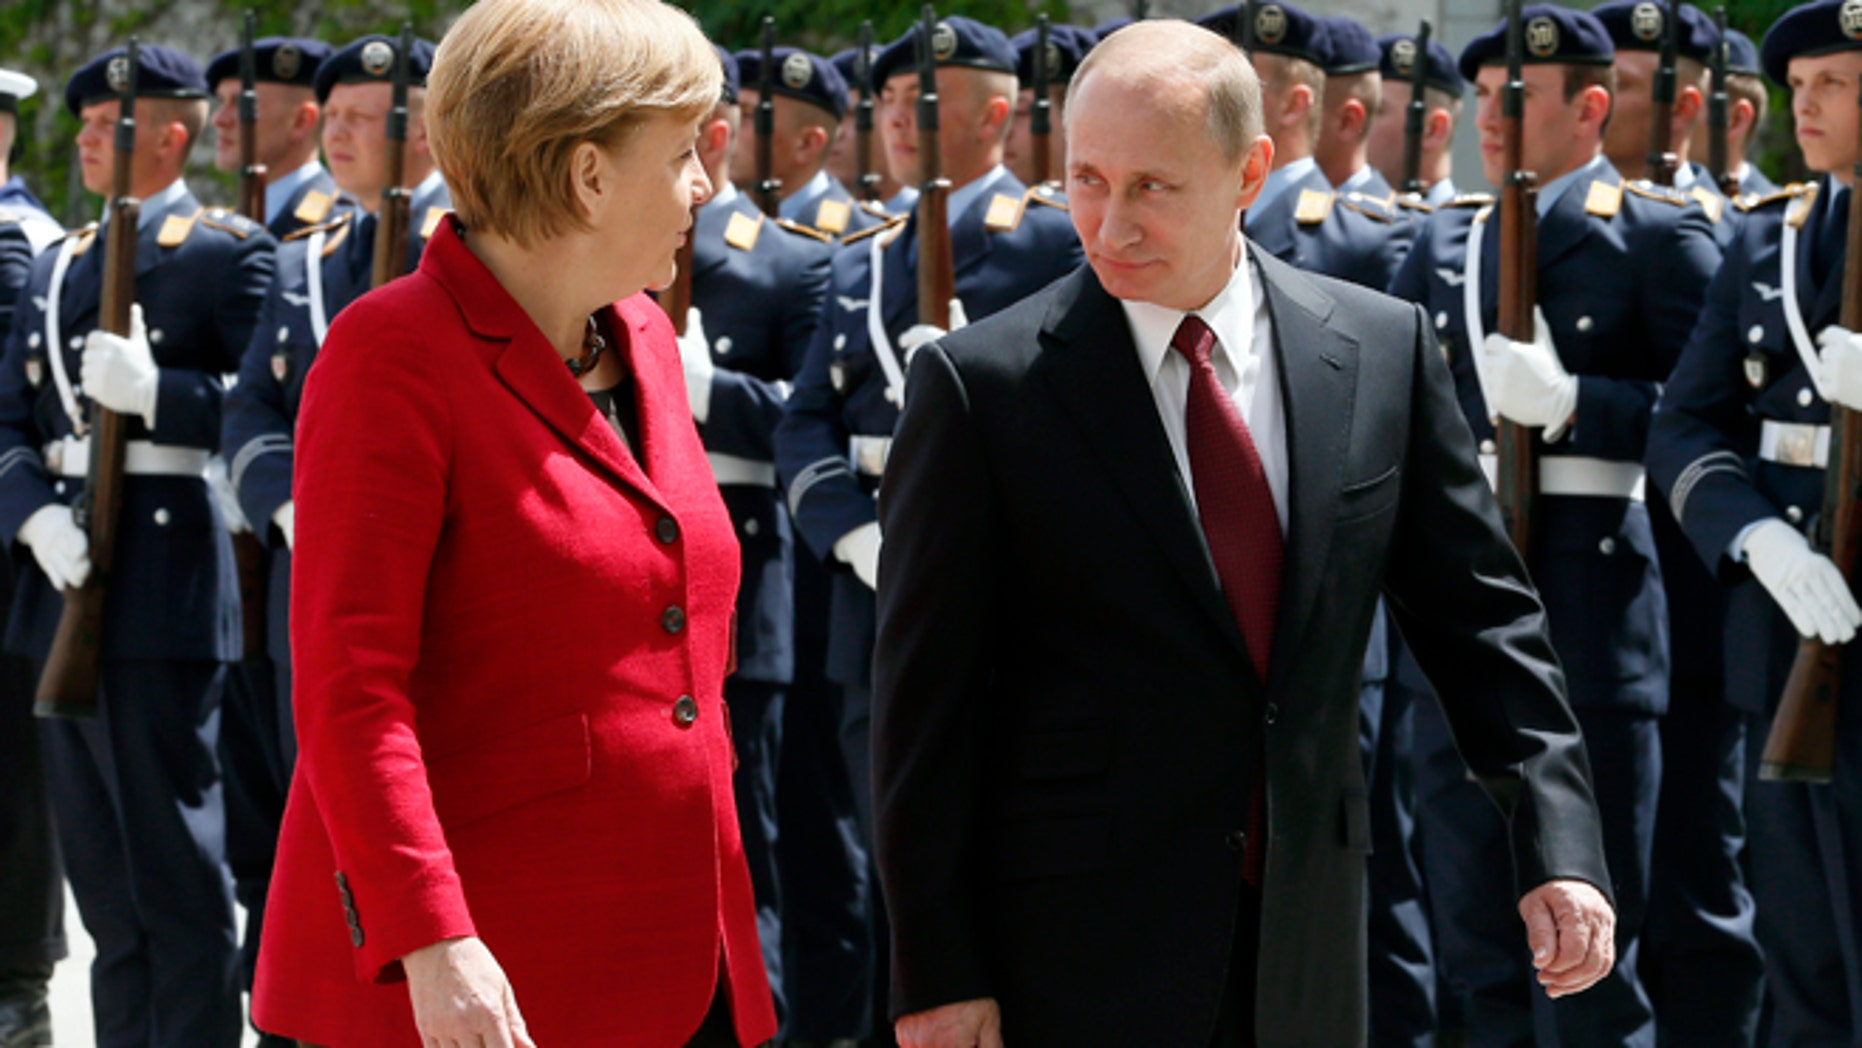 June 1, 2012: German Chancellor Angela Merkel, right, welcomes President of Russia Vladimir Putin, left, for a meeting at the chancellery in Berlin, Germany.